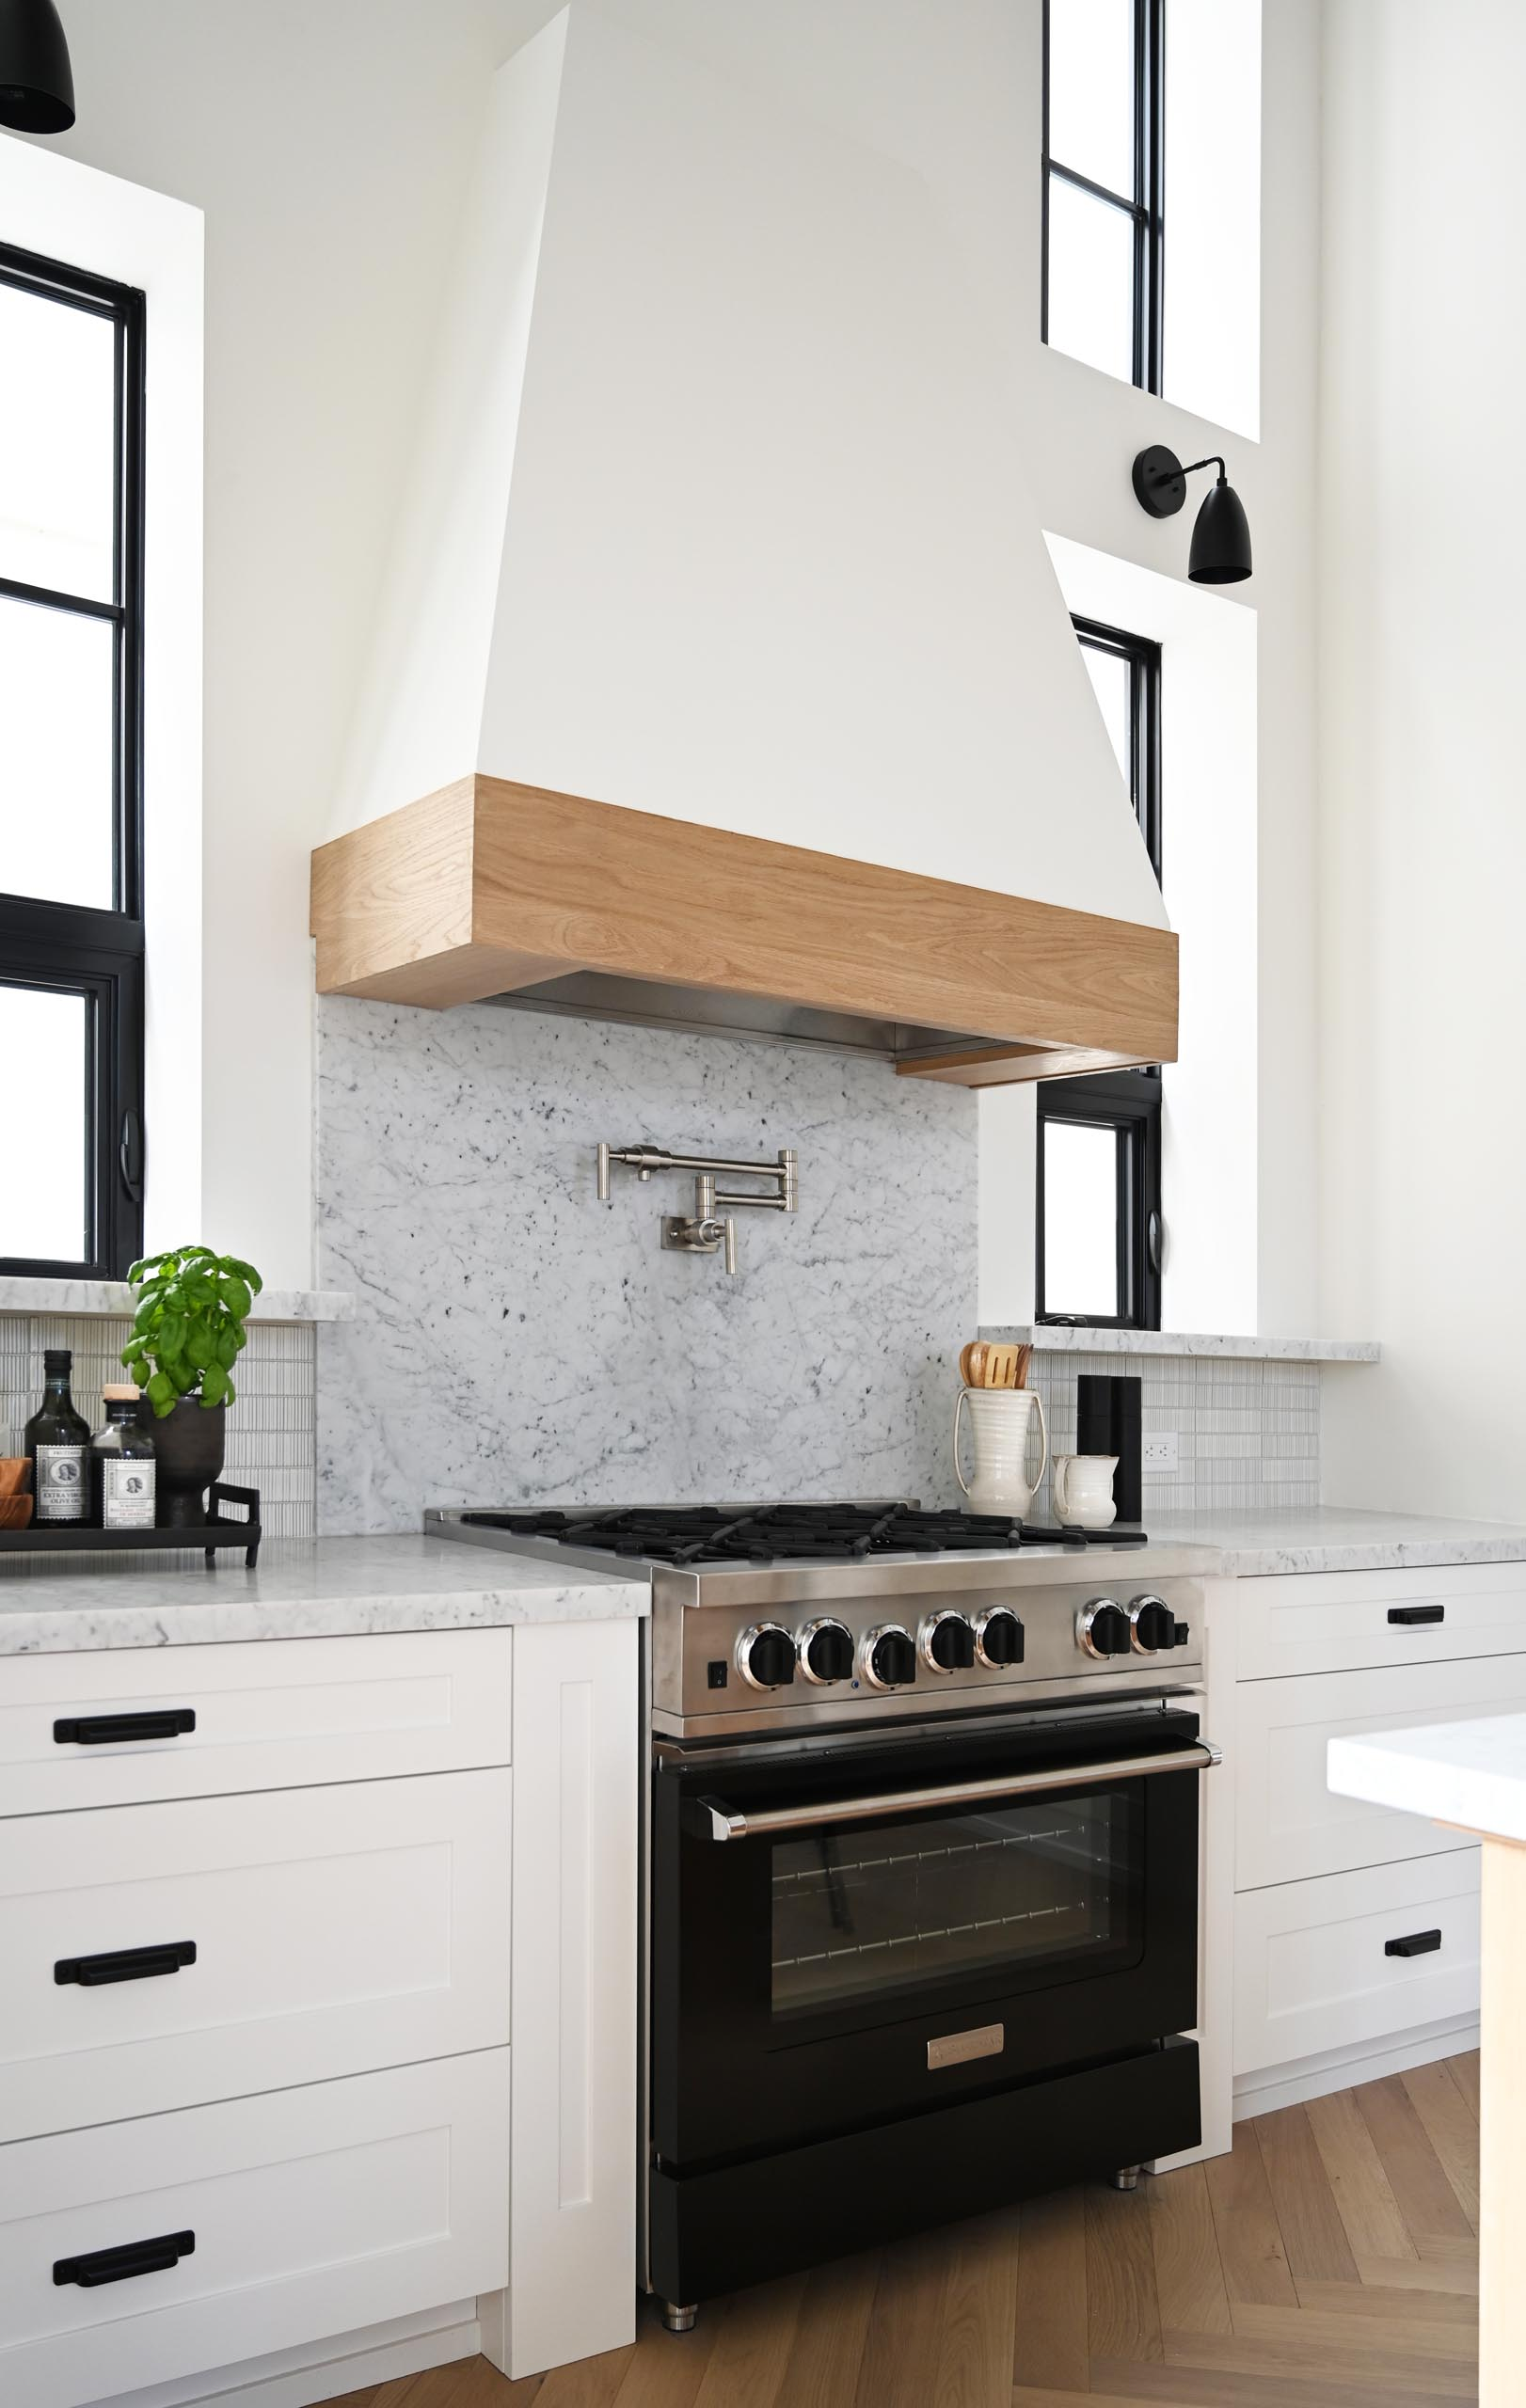 A contemporary farmhouse-inspired kitchen with gray countertops, white cabinets, and wood accents.